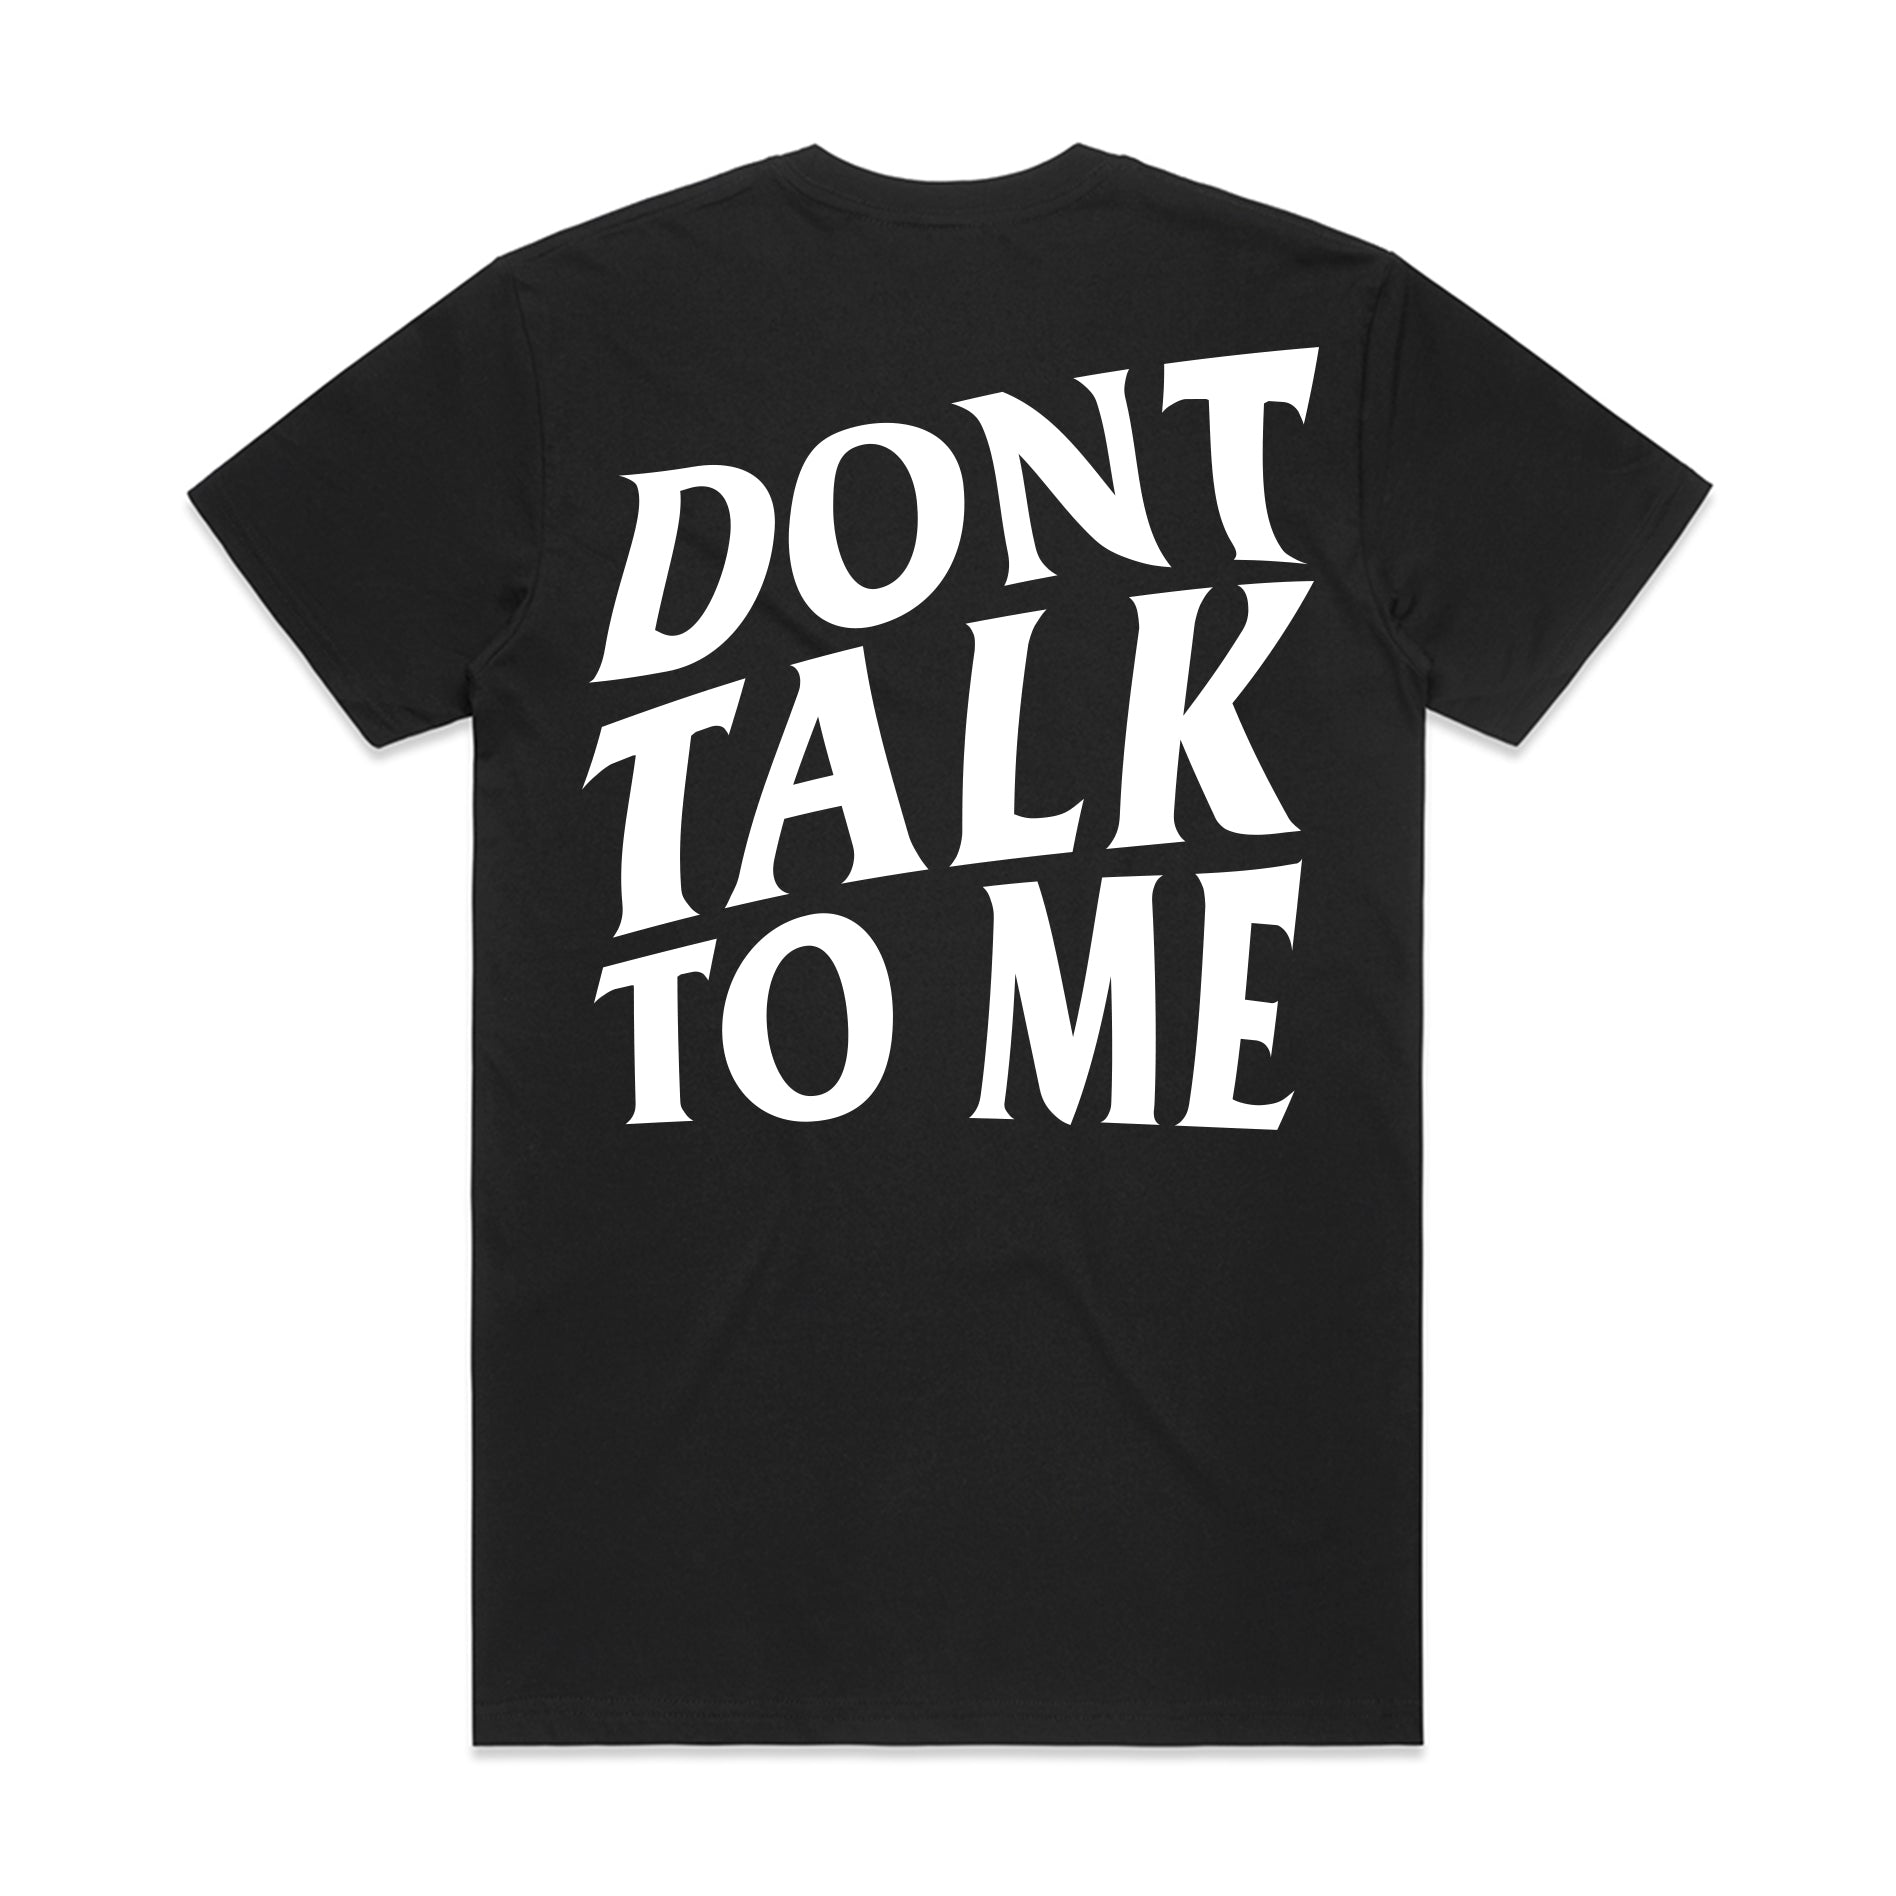 Don't Talk To Me - Black Tee